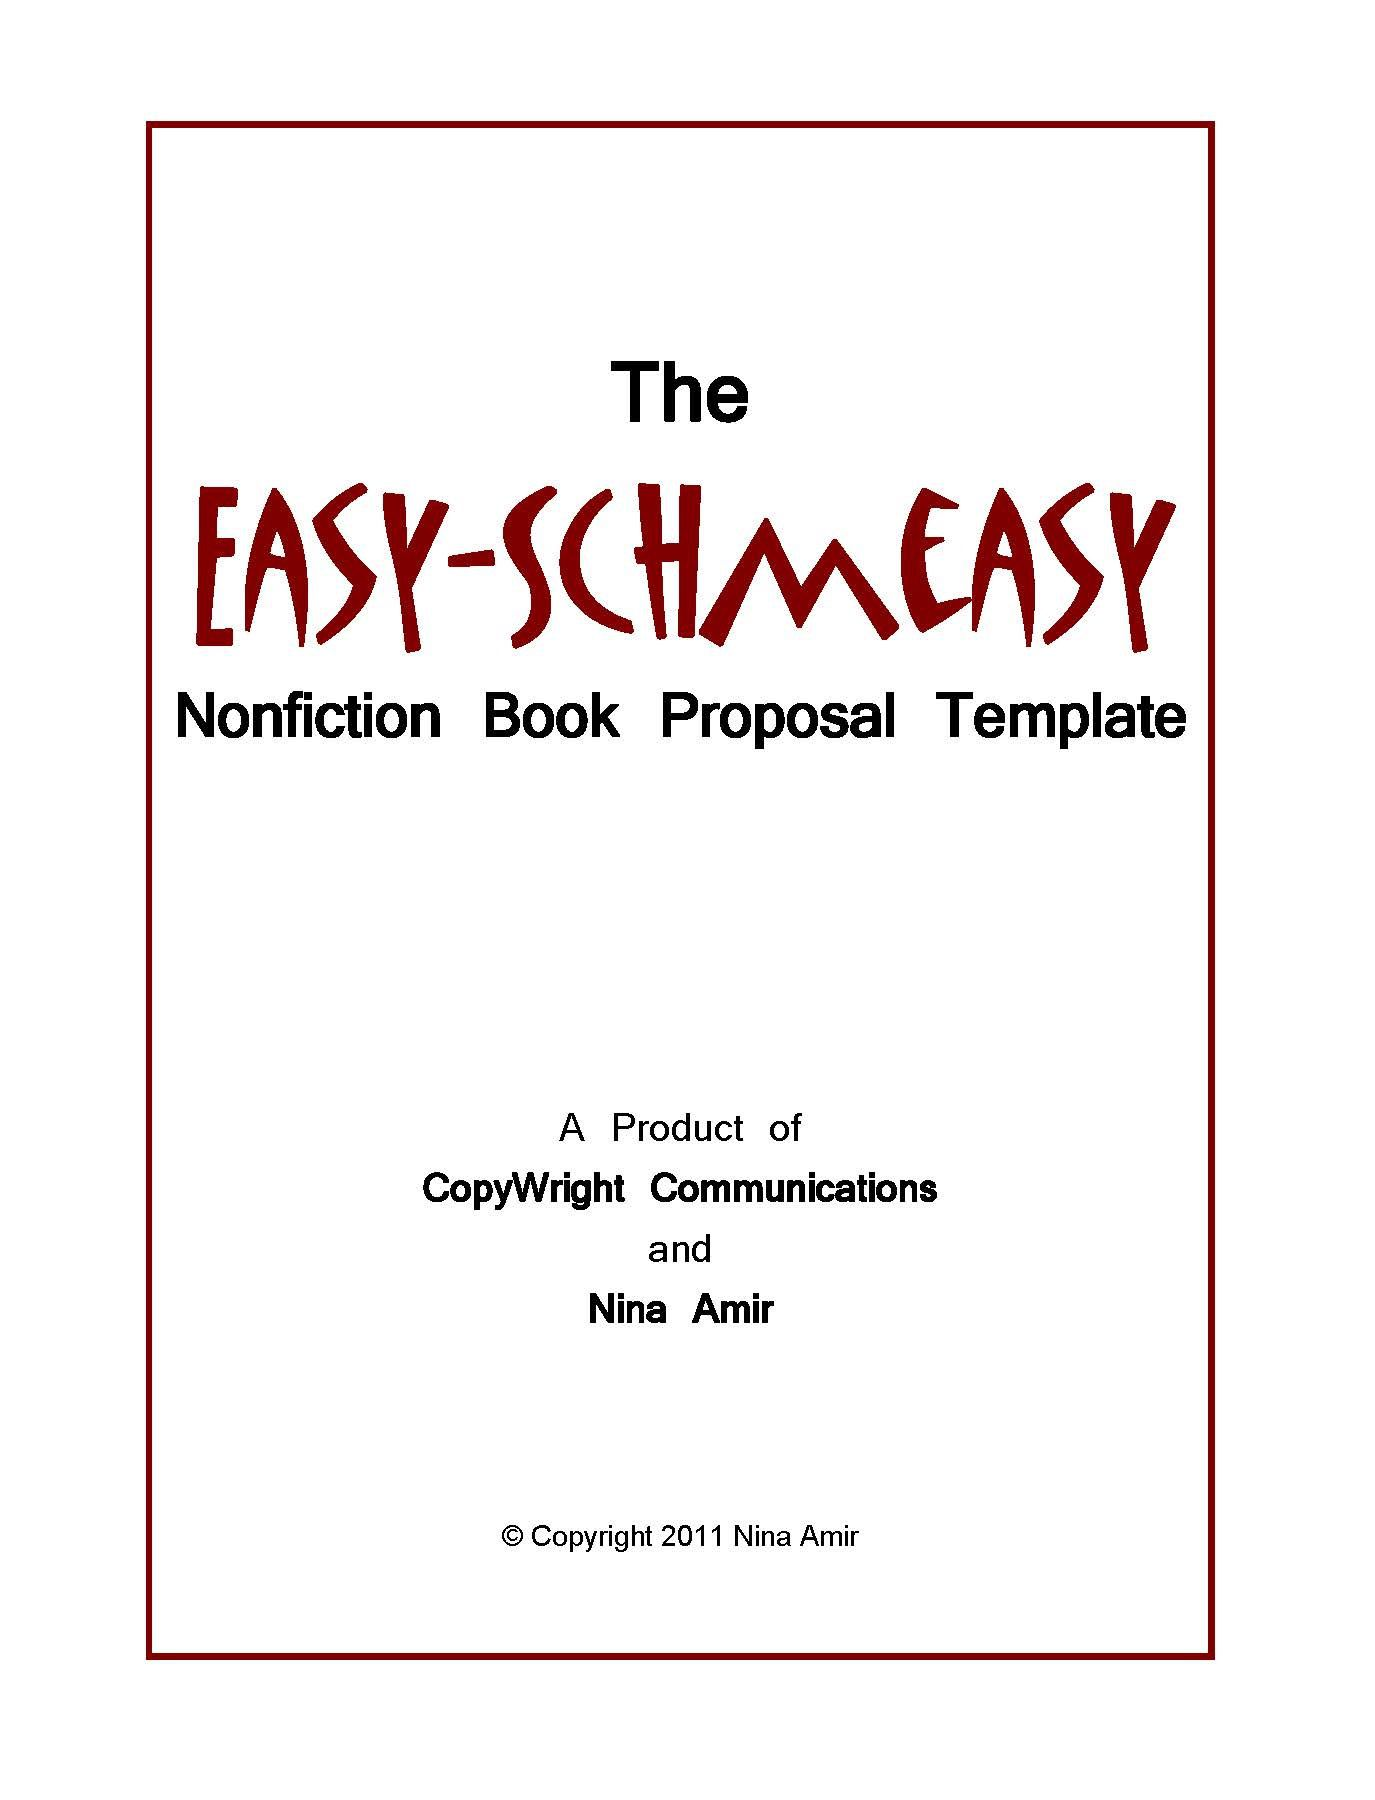 005 Unusual Nonfiction Book Proposal Template Sample  ExampleFull